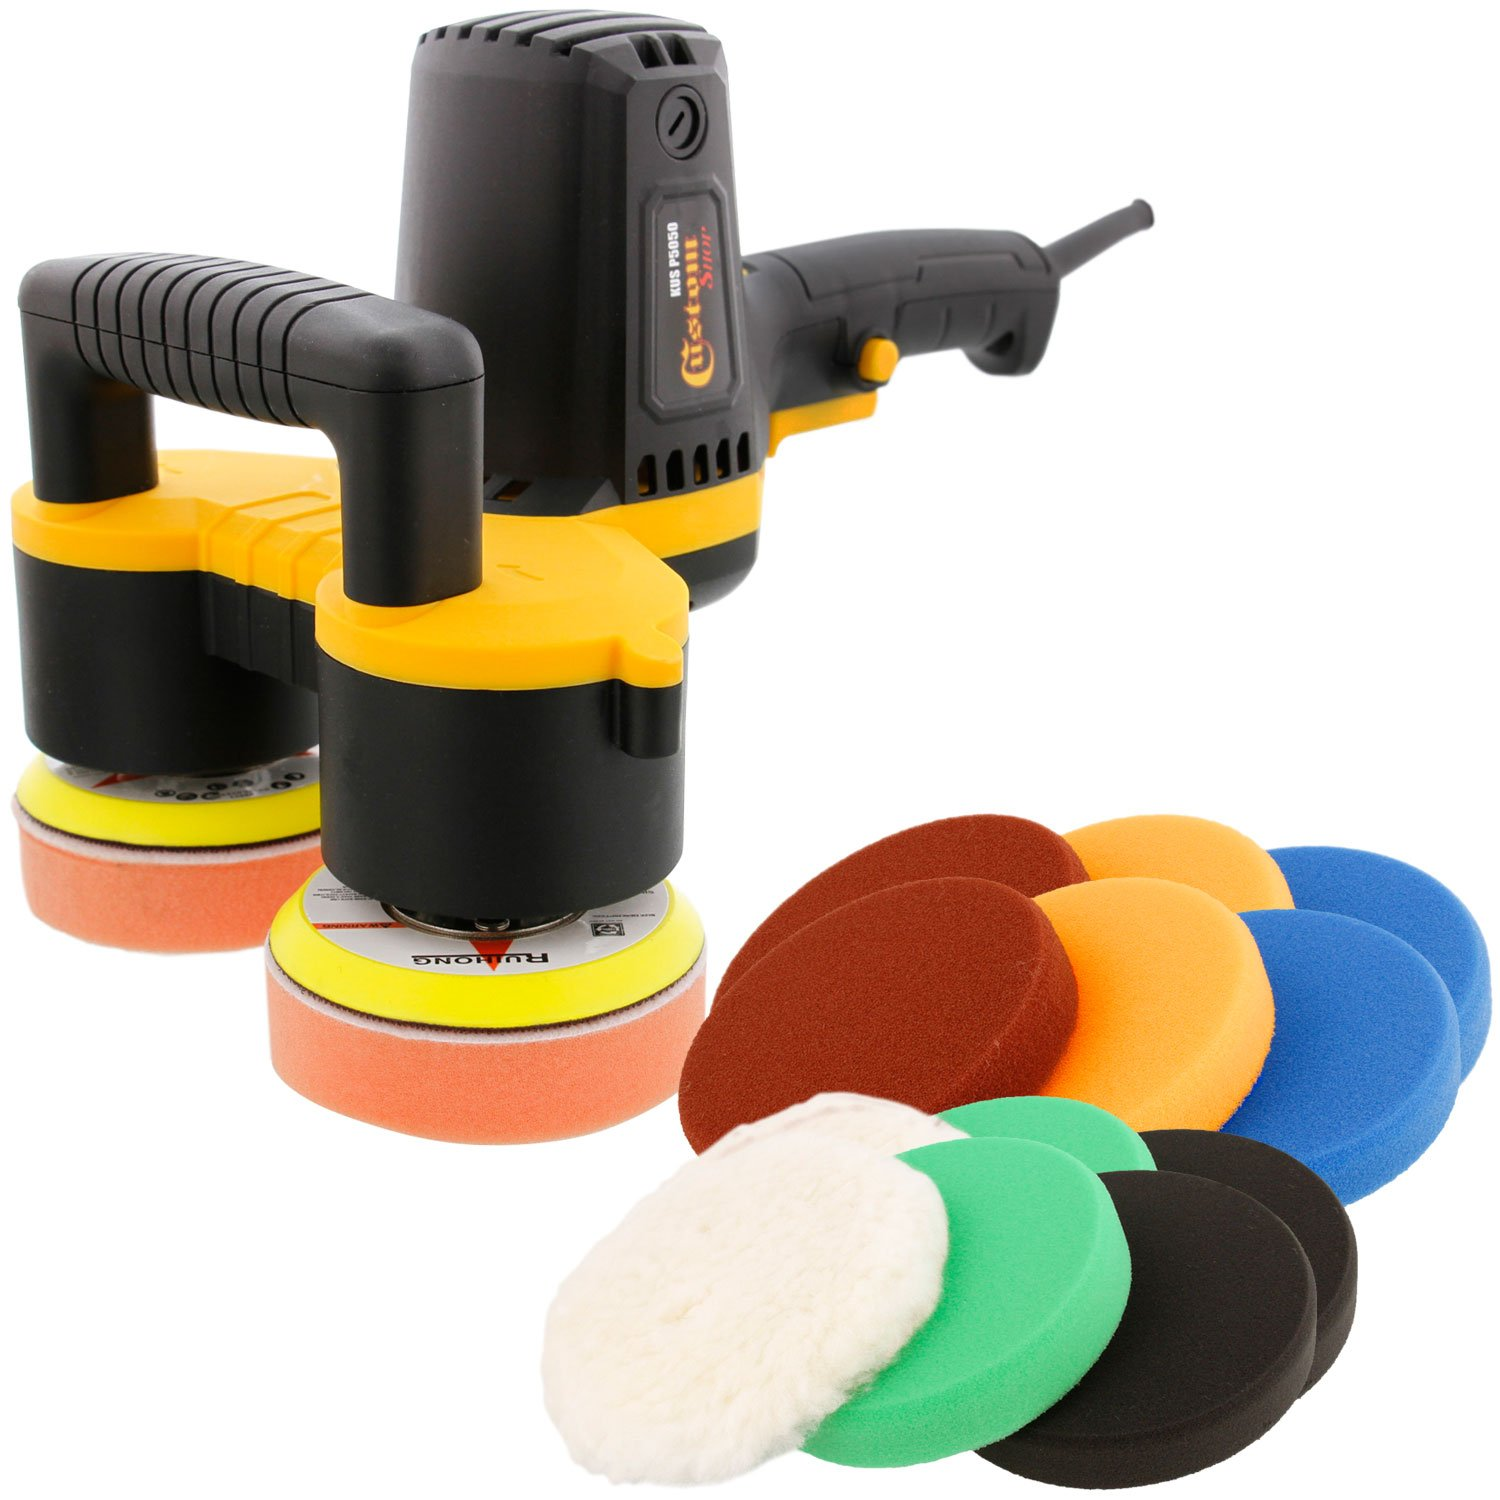 Custom Shop 4'' Dual Head Variable Speed Random Orbit Dual-Action Polisher with a 12 Pad Buffing and Polishing Kit - Buff, Polish & Detail Car Auto Paint